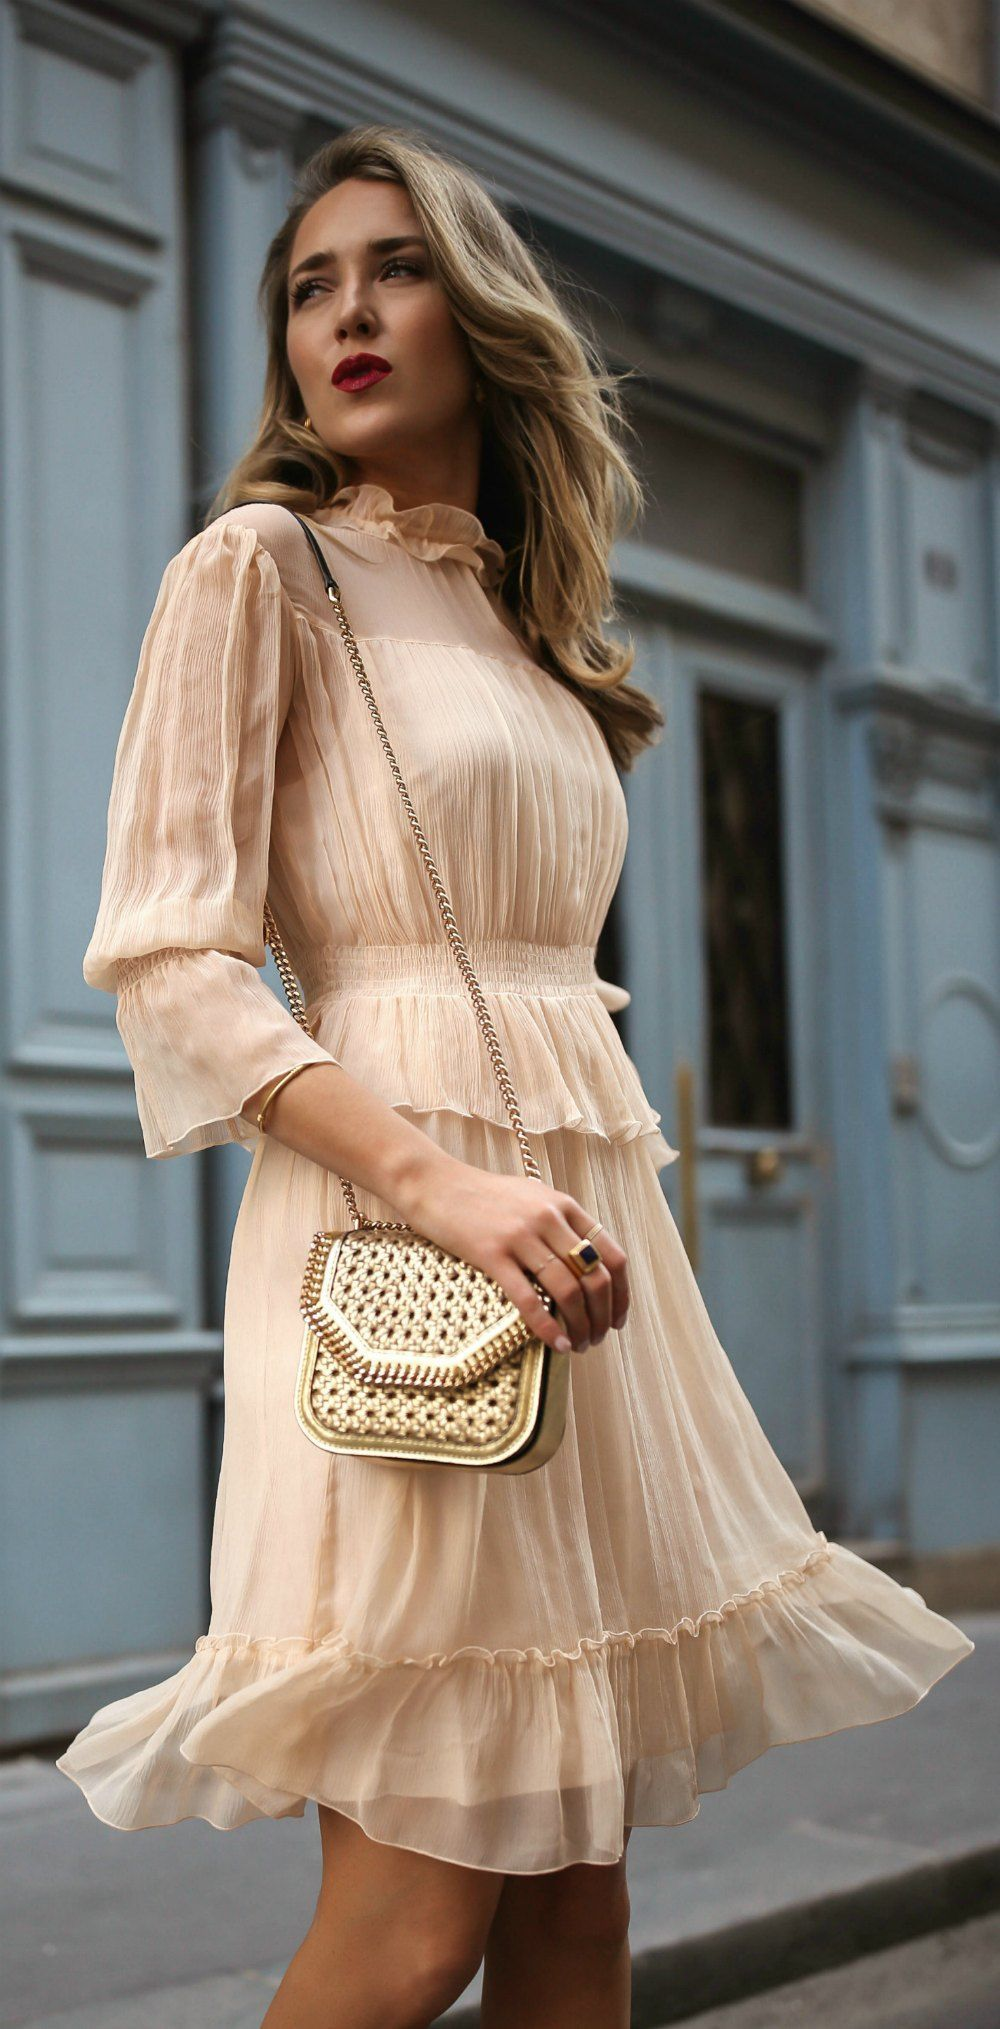 30 Dresses in 30 Days | Day 14: What to Wear to a Baptism // Light nude  apricot ruffle flounce trim long sleeve short dress, tan metallic woven  shoulder bag ...